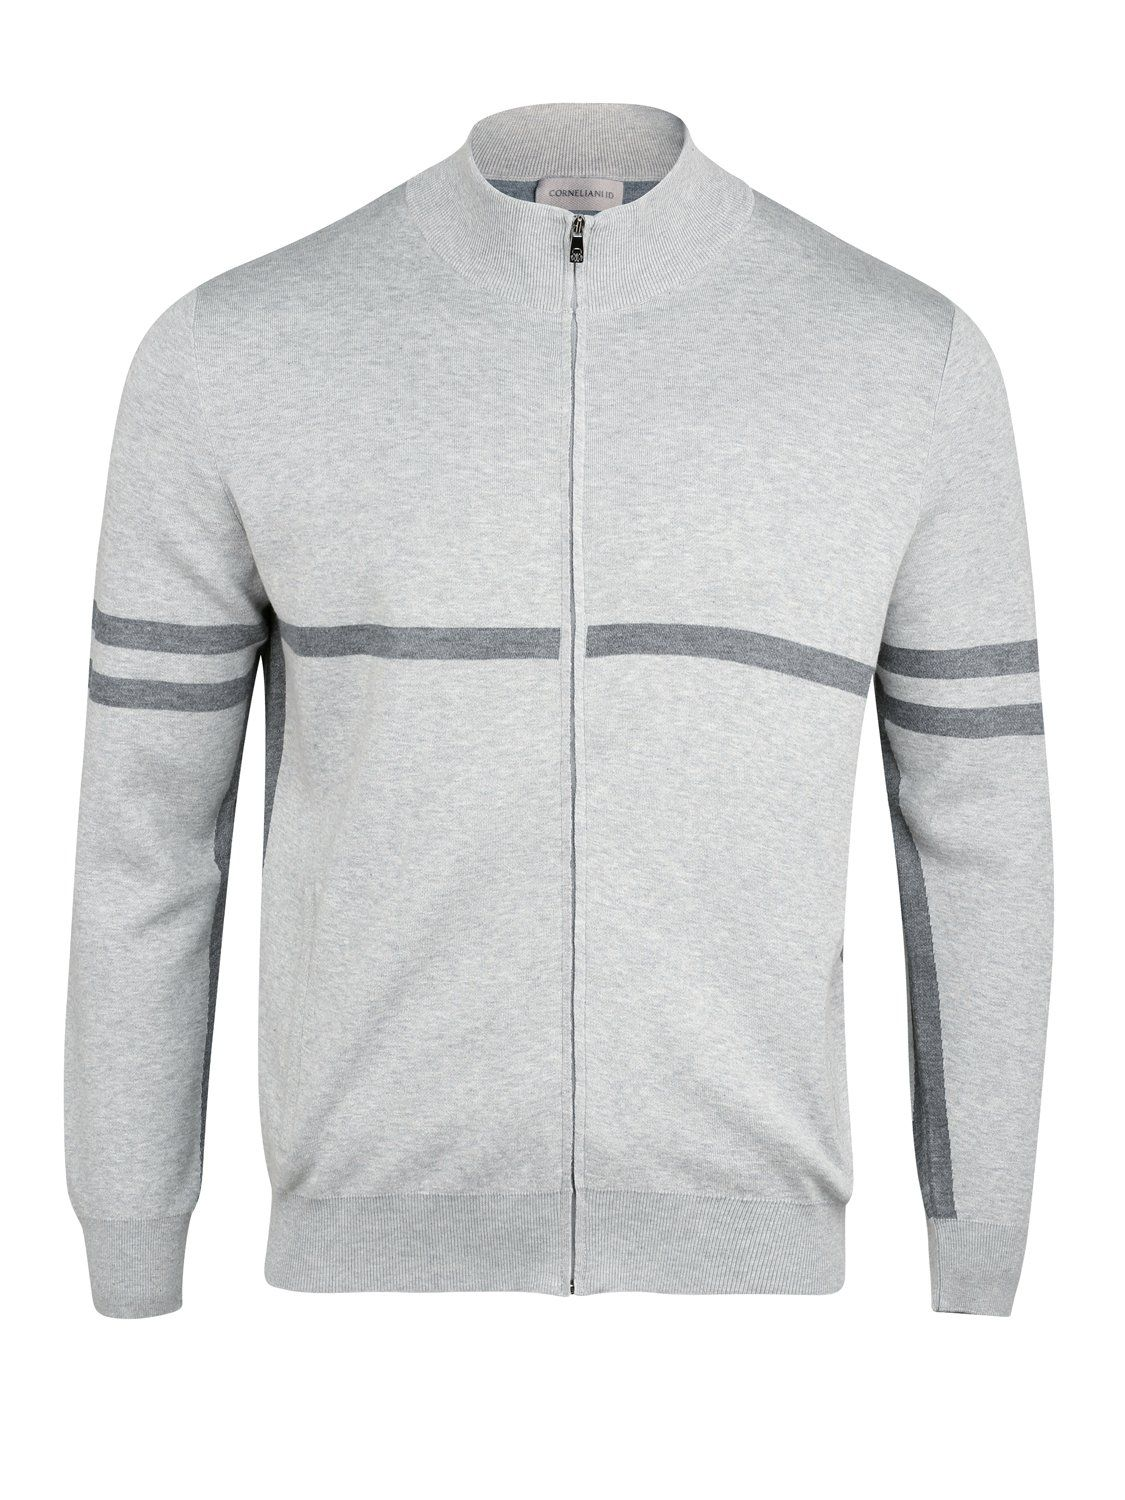 Corneliani Tracksuit Top (Light Grey) EU 50 / UK L